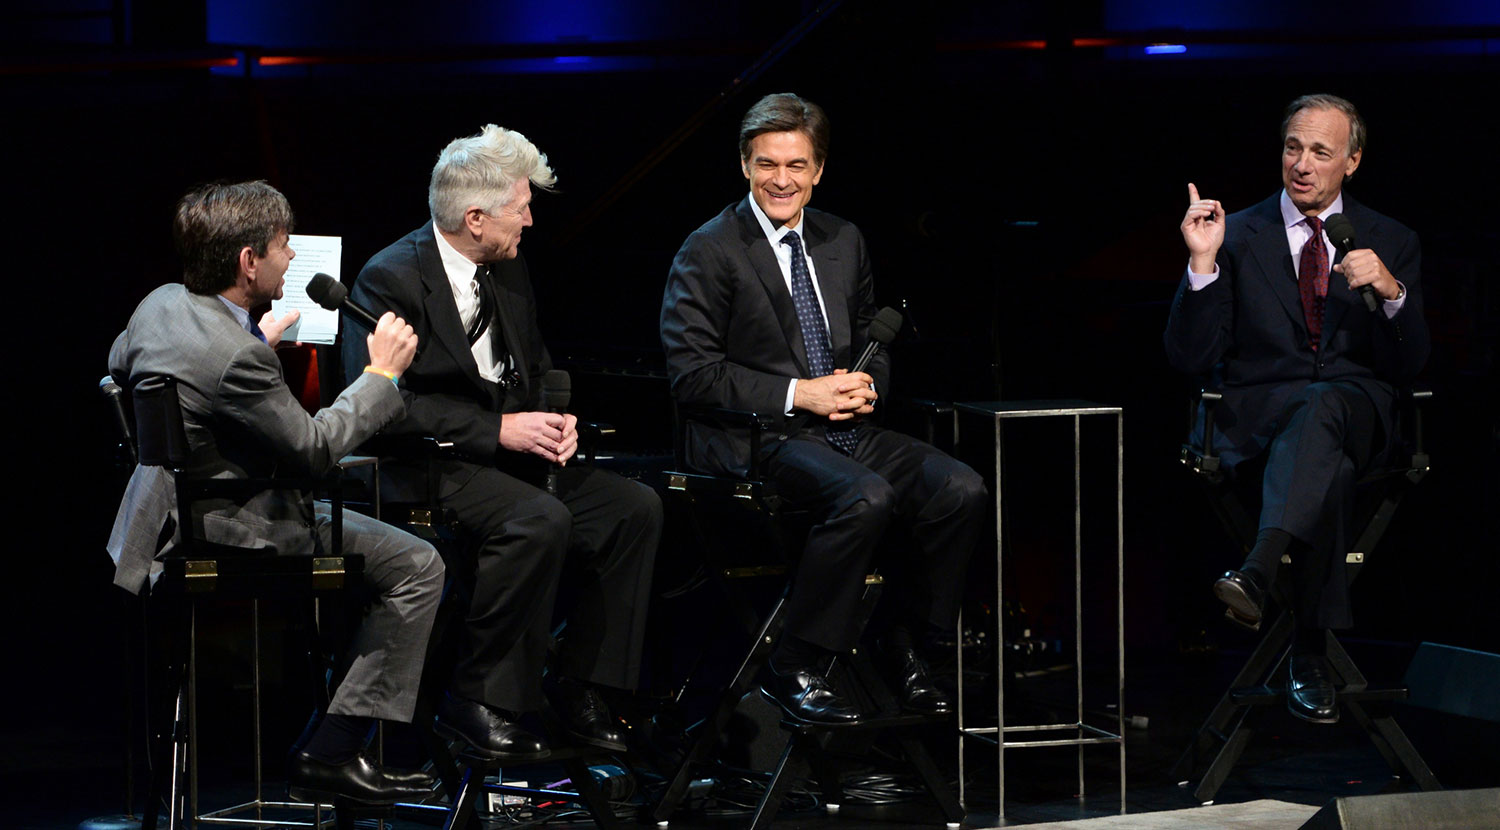 From left: George Stephanopoulos, David Lynch, Dr. Mehmet Oz, and Ray Dalio